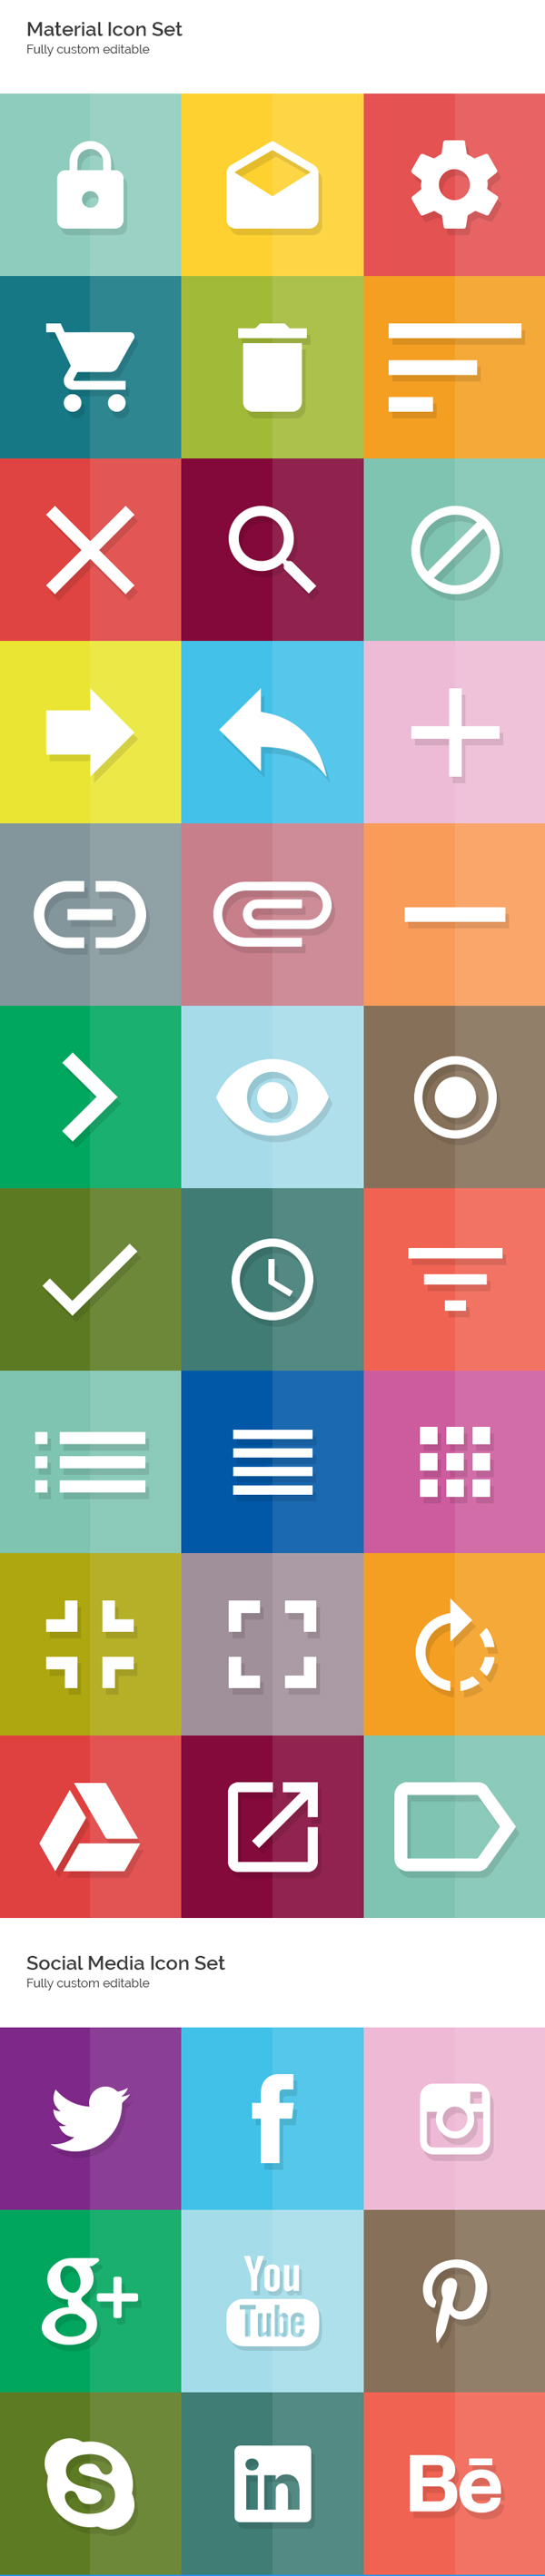 Free Material Icon Set (Fully Editable)